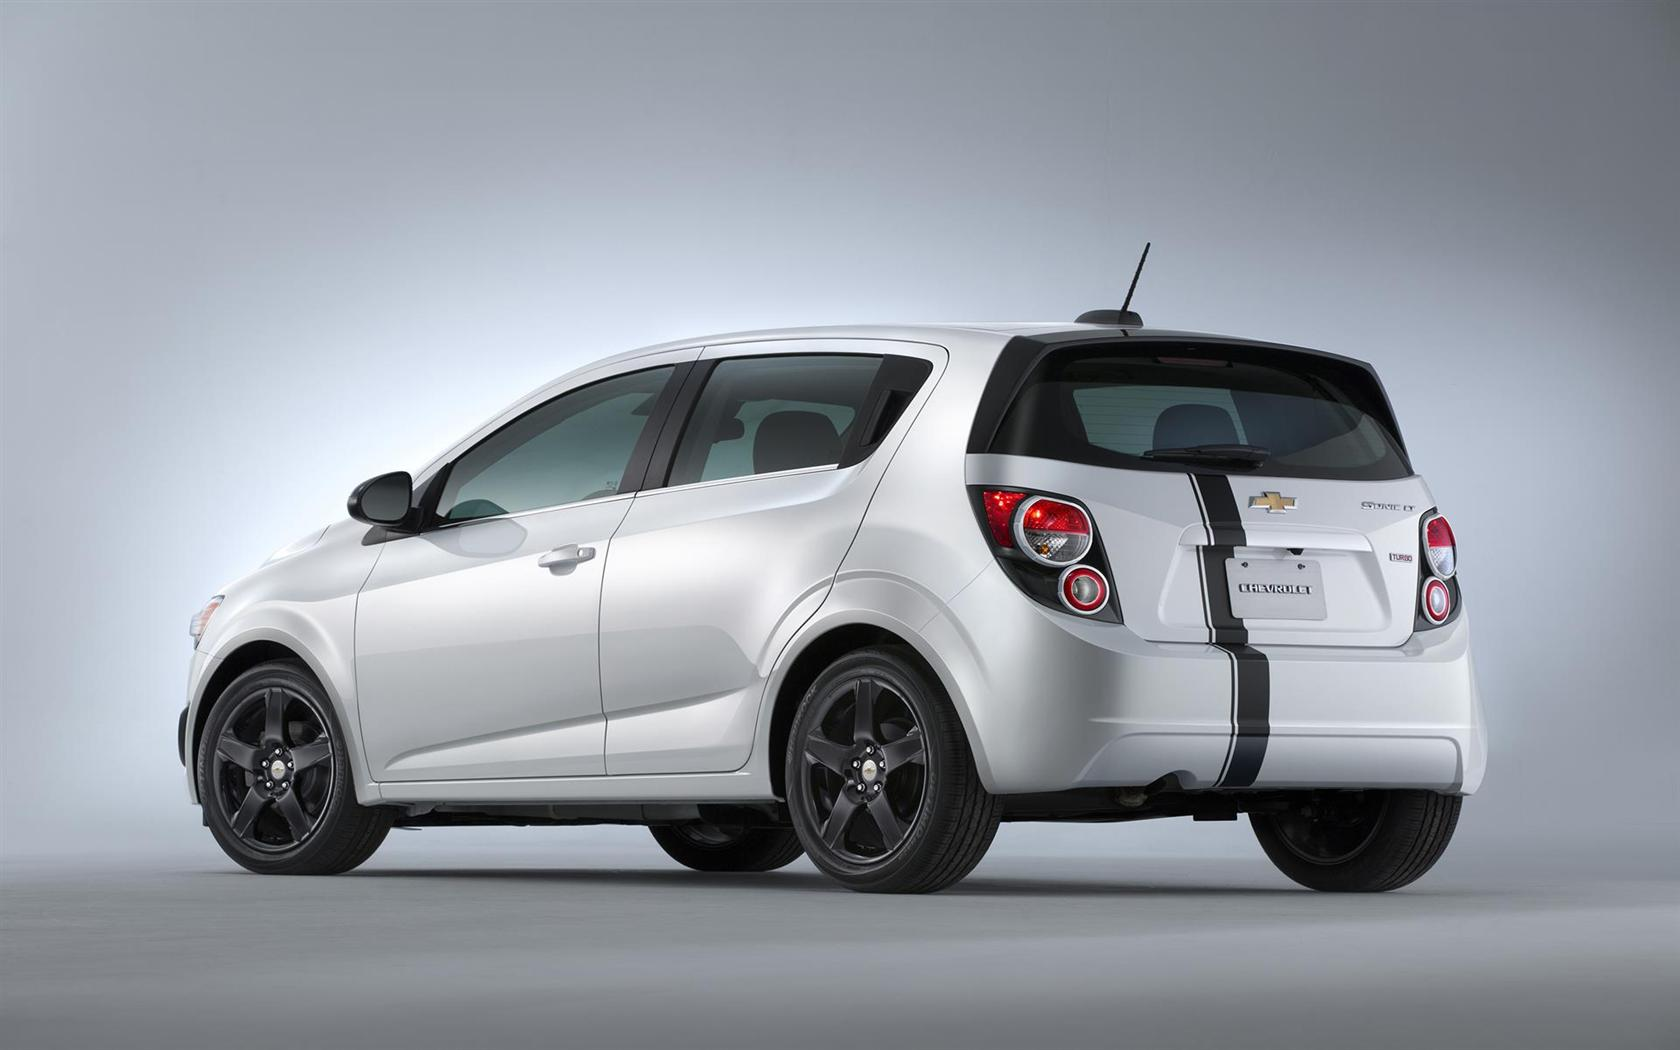 2014 Chevrolet Sonic Accessories Concept